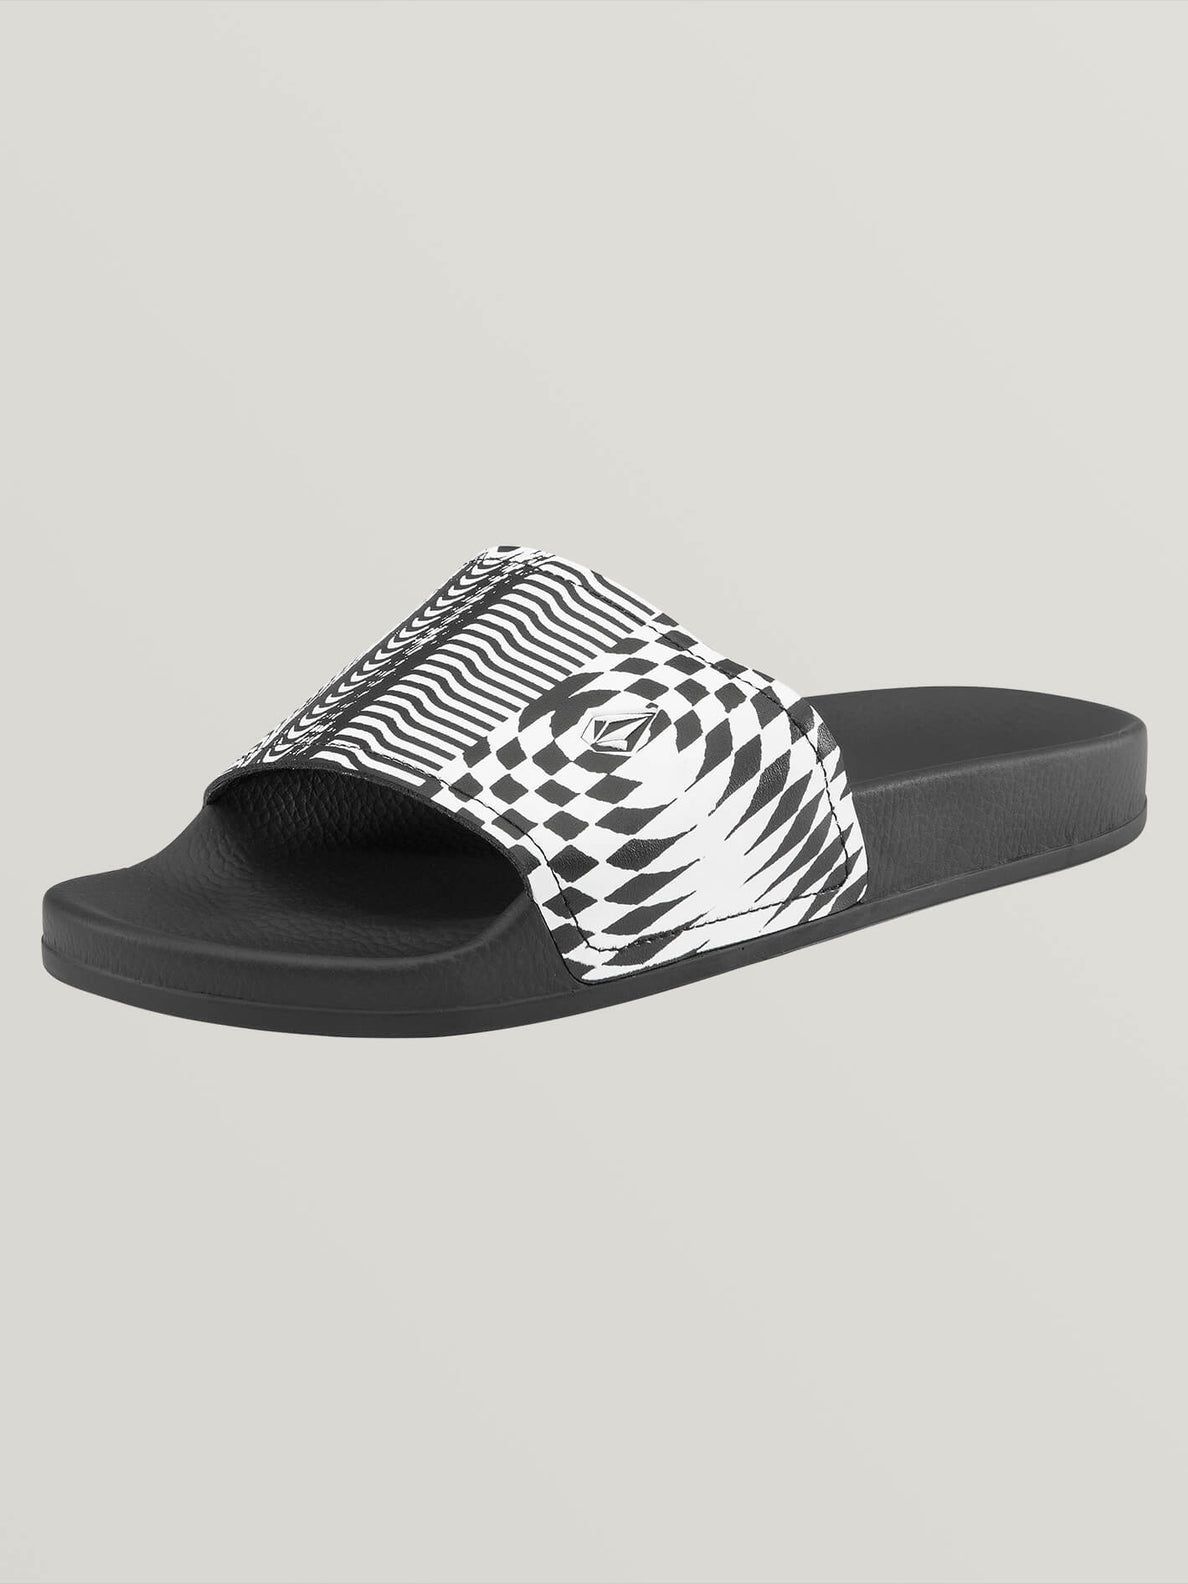 Don't Trip Slides In Black Stripe, Back View